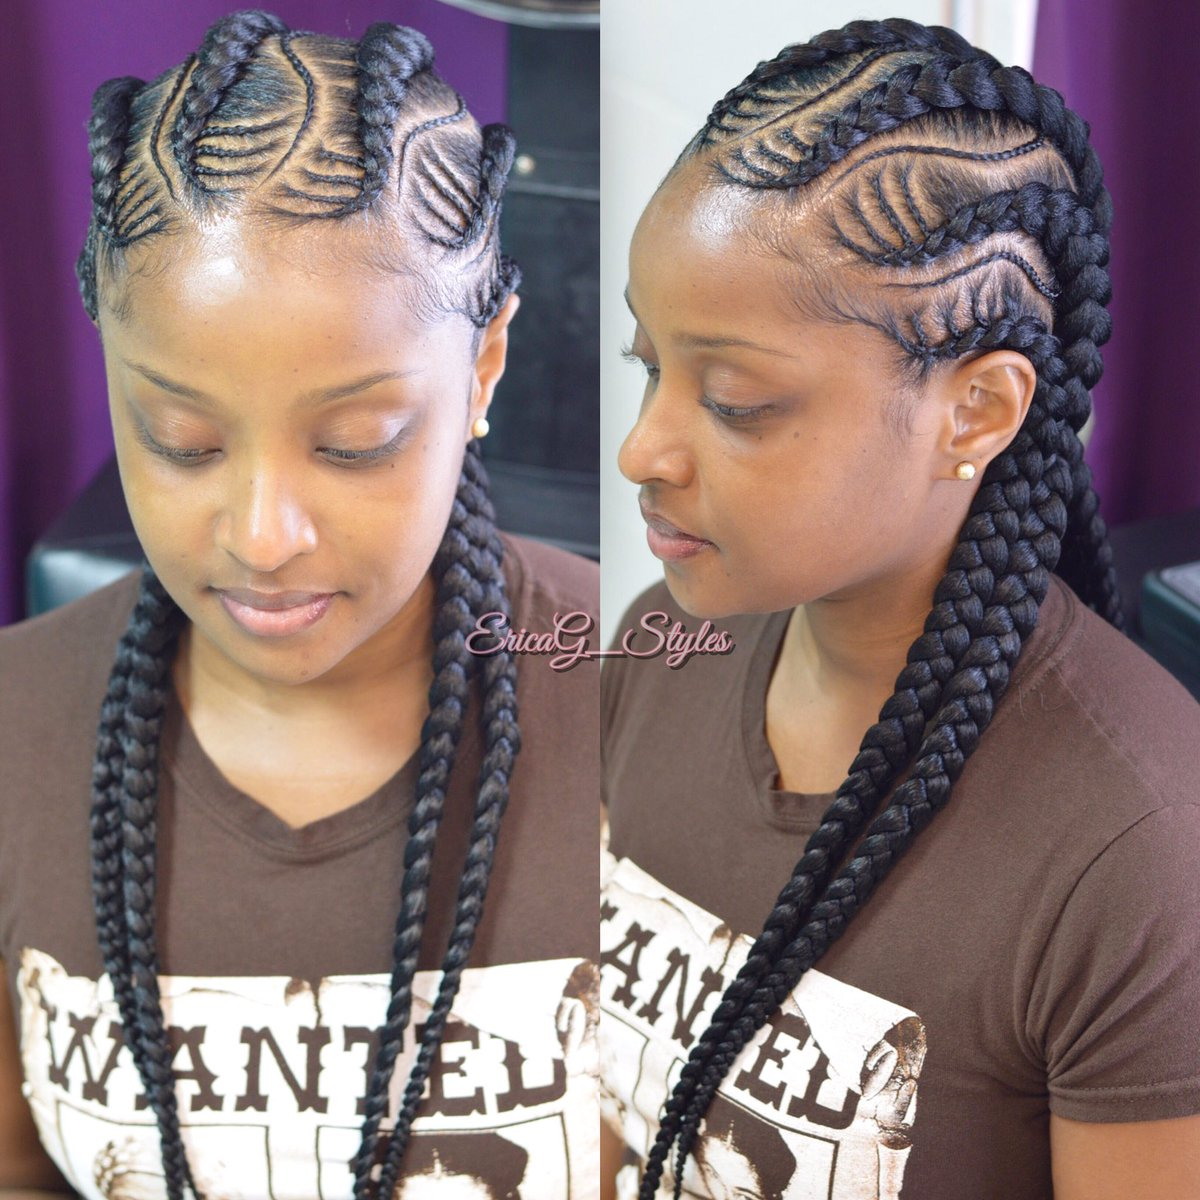 Erica G Styles On Twitter Quot Cornrows Frenchbraids